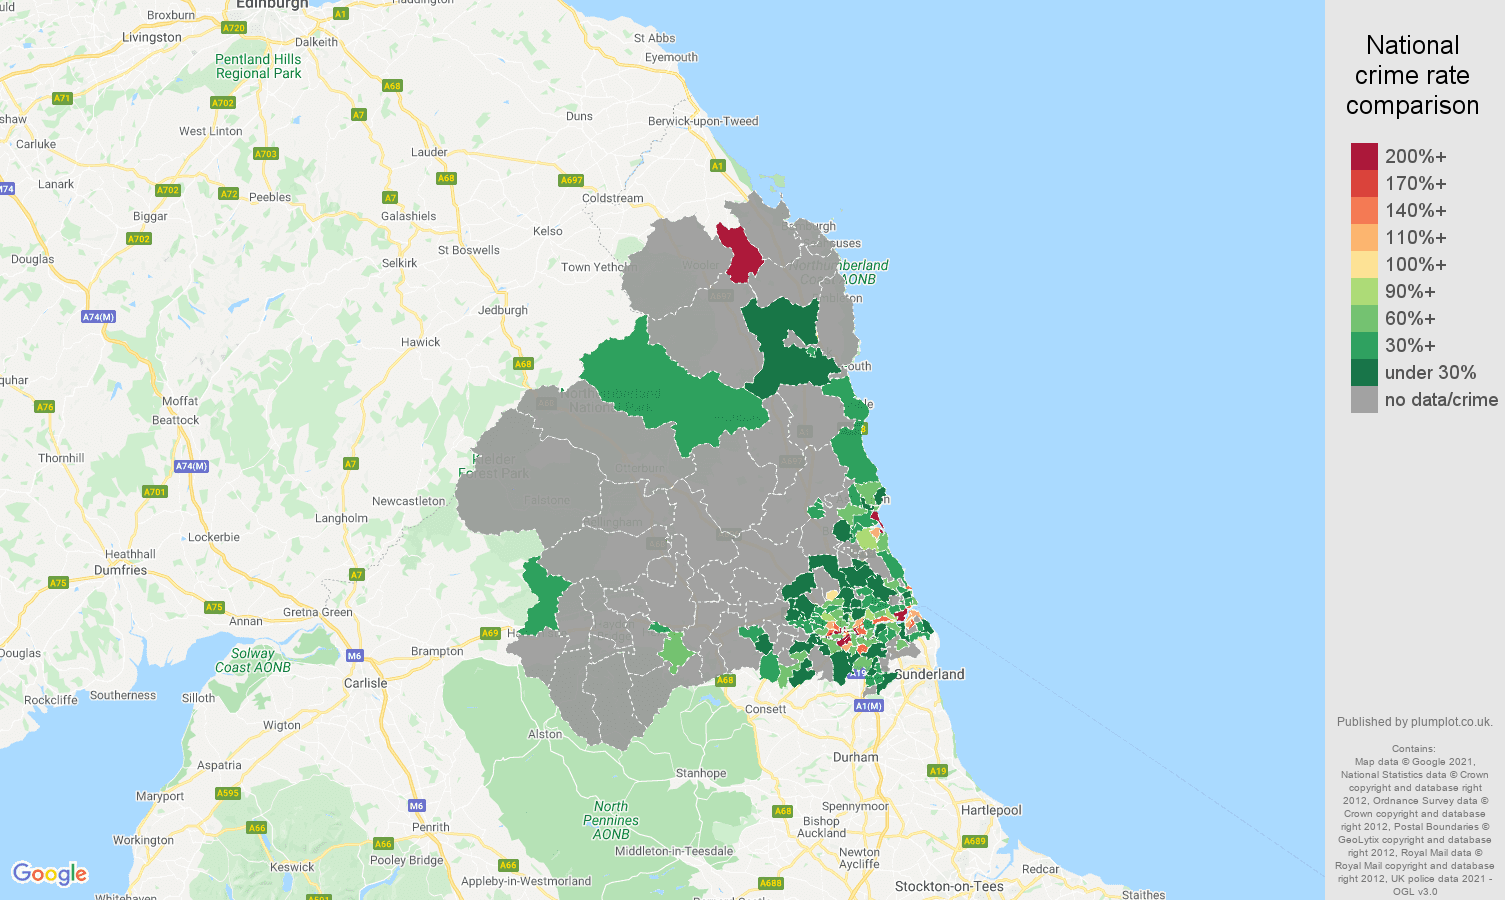 Newcastle upon Tyne theft from the person crime rate comparison map